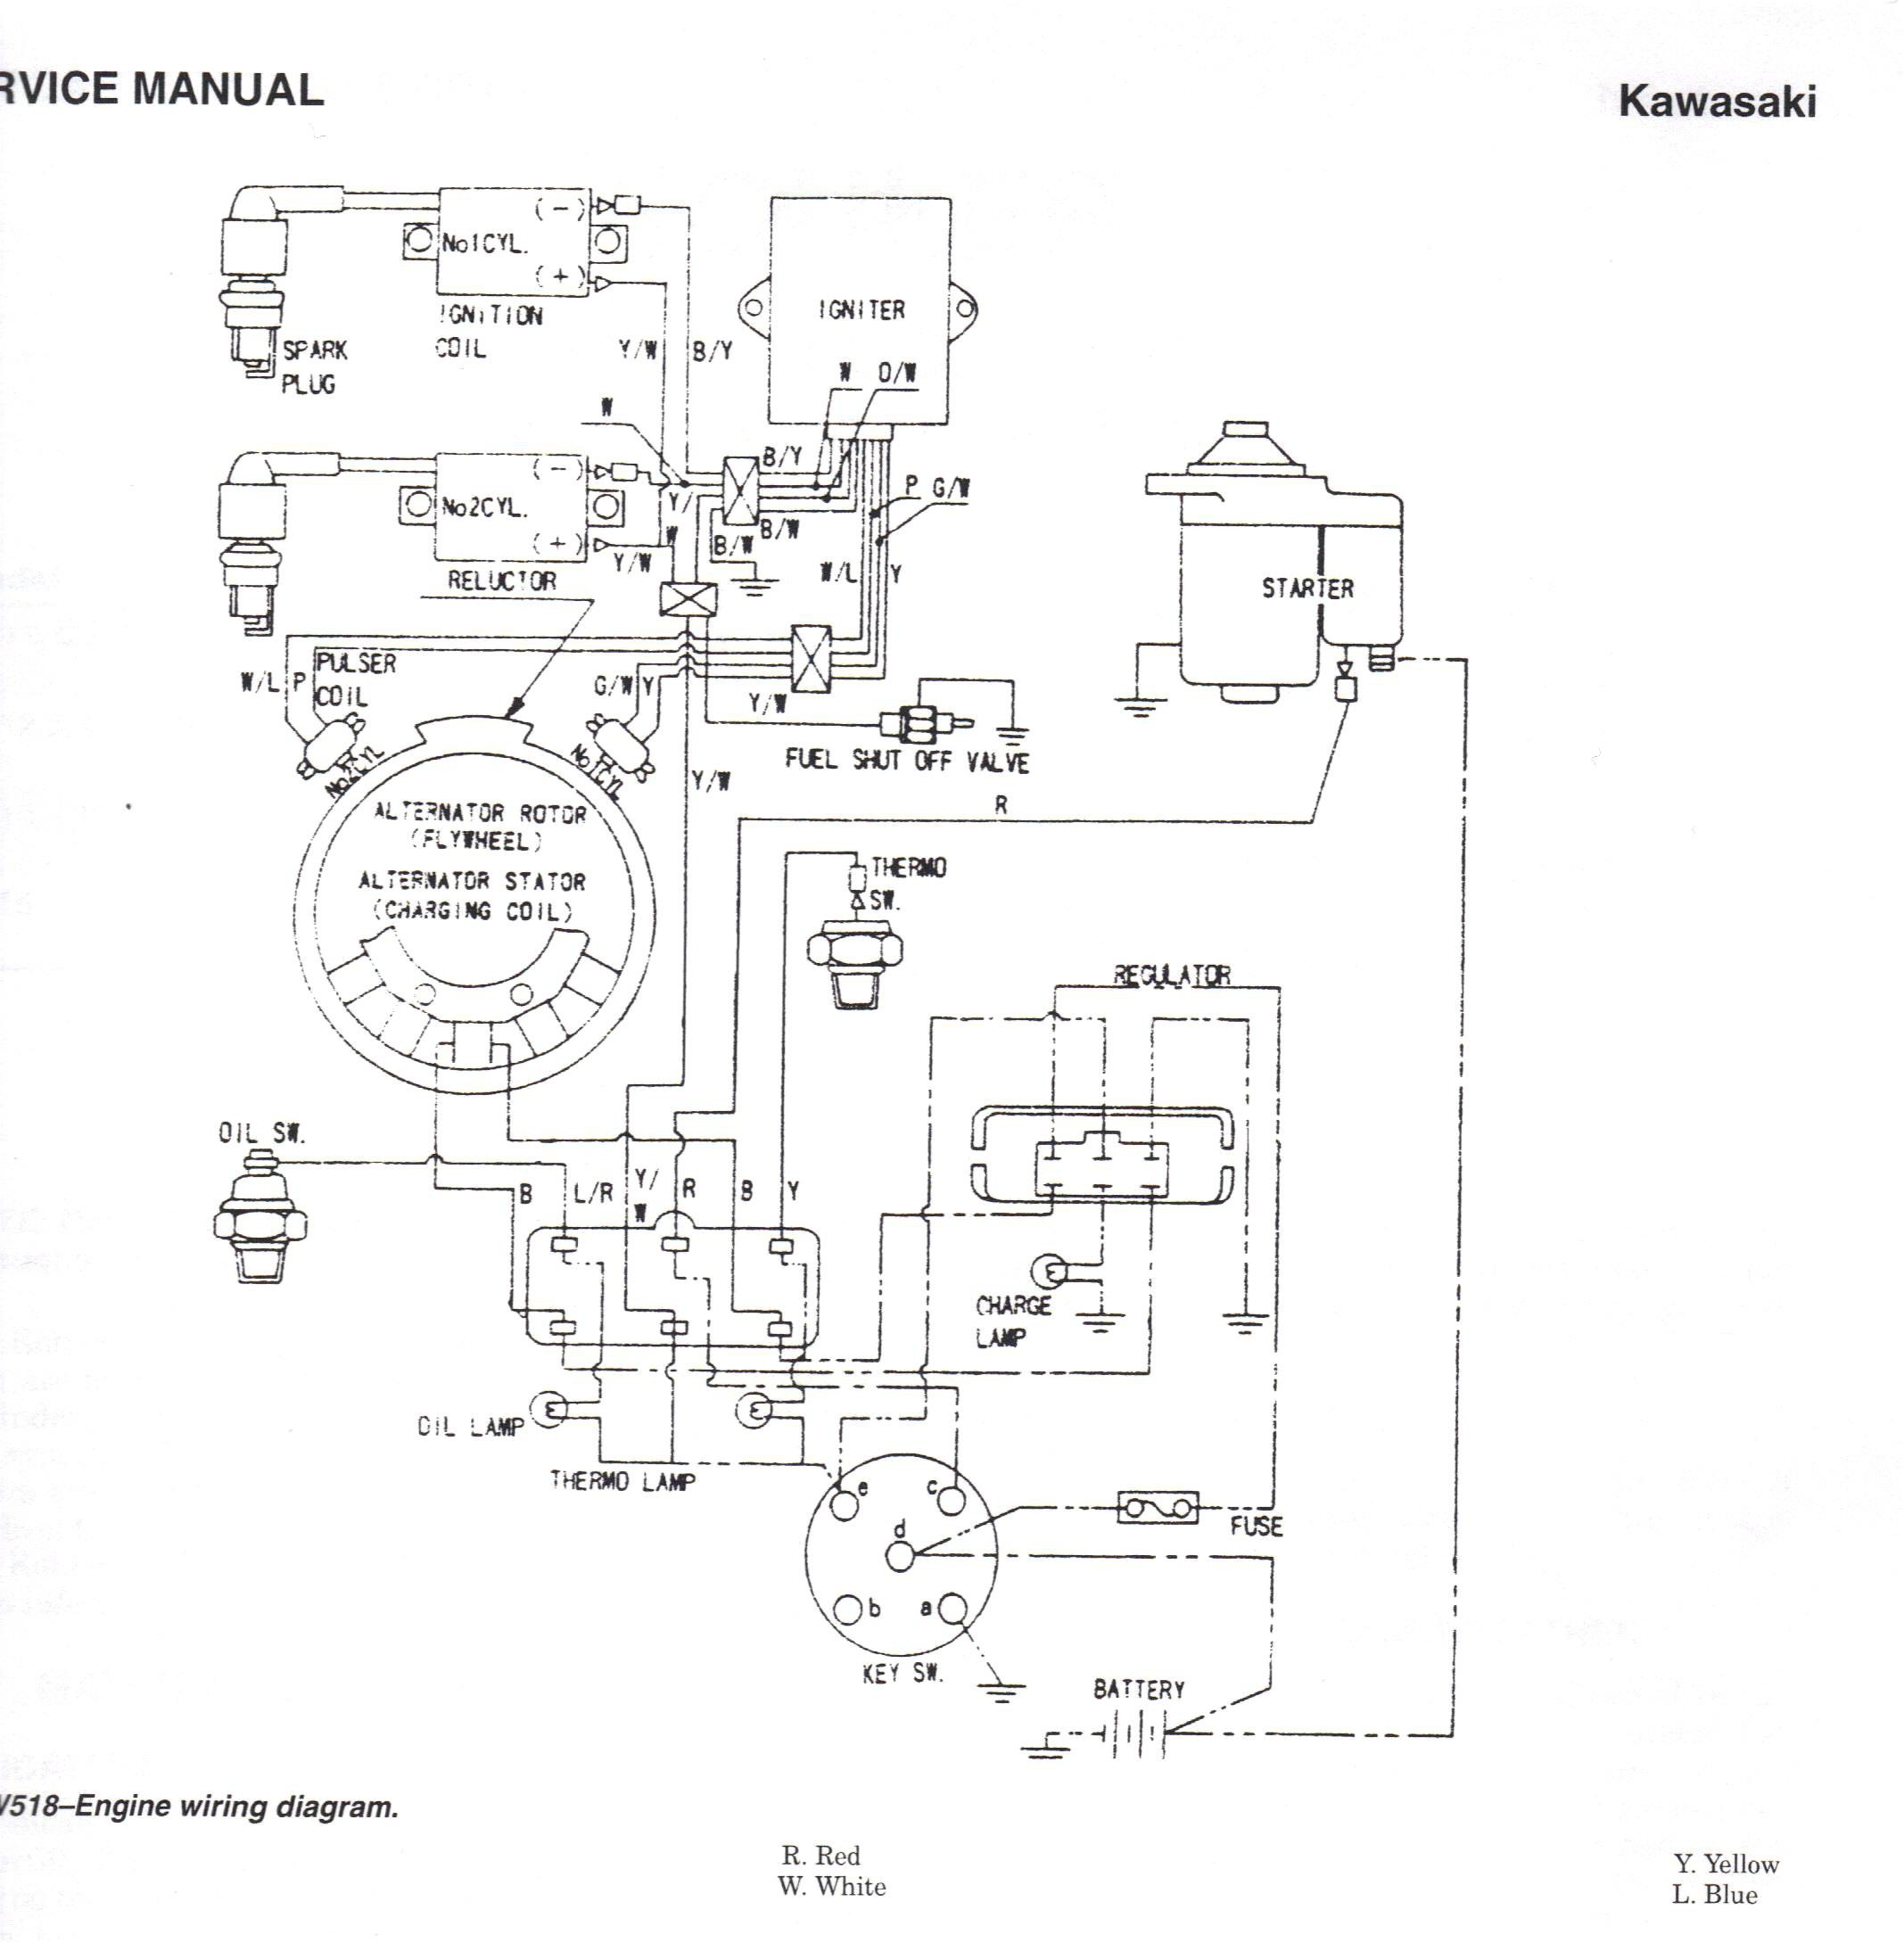 ford tractor sel engine wiring diagram another blog about wiring rh ok2 infoservice ru